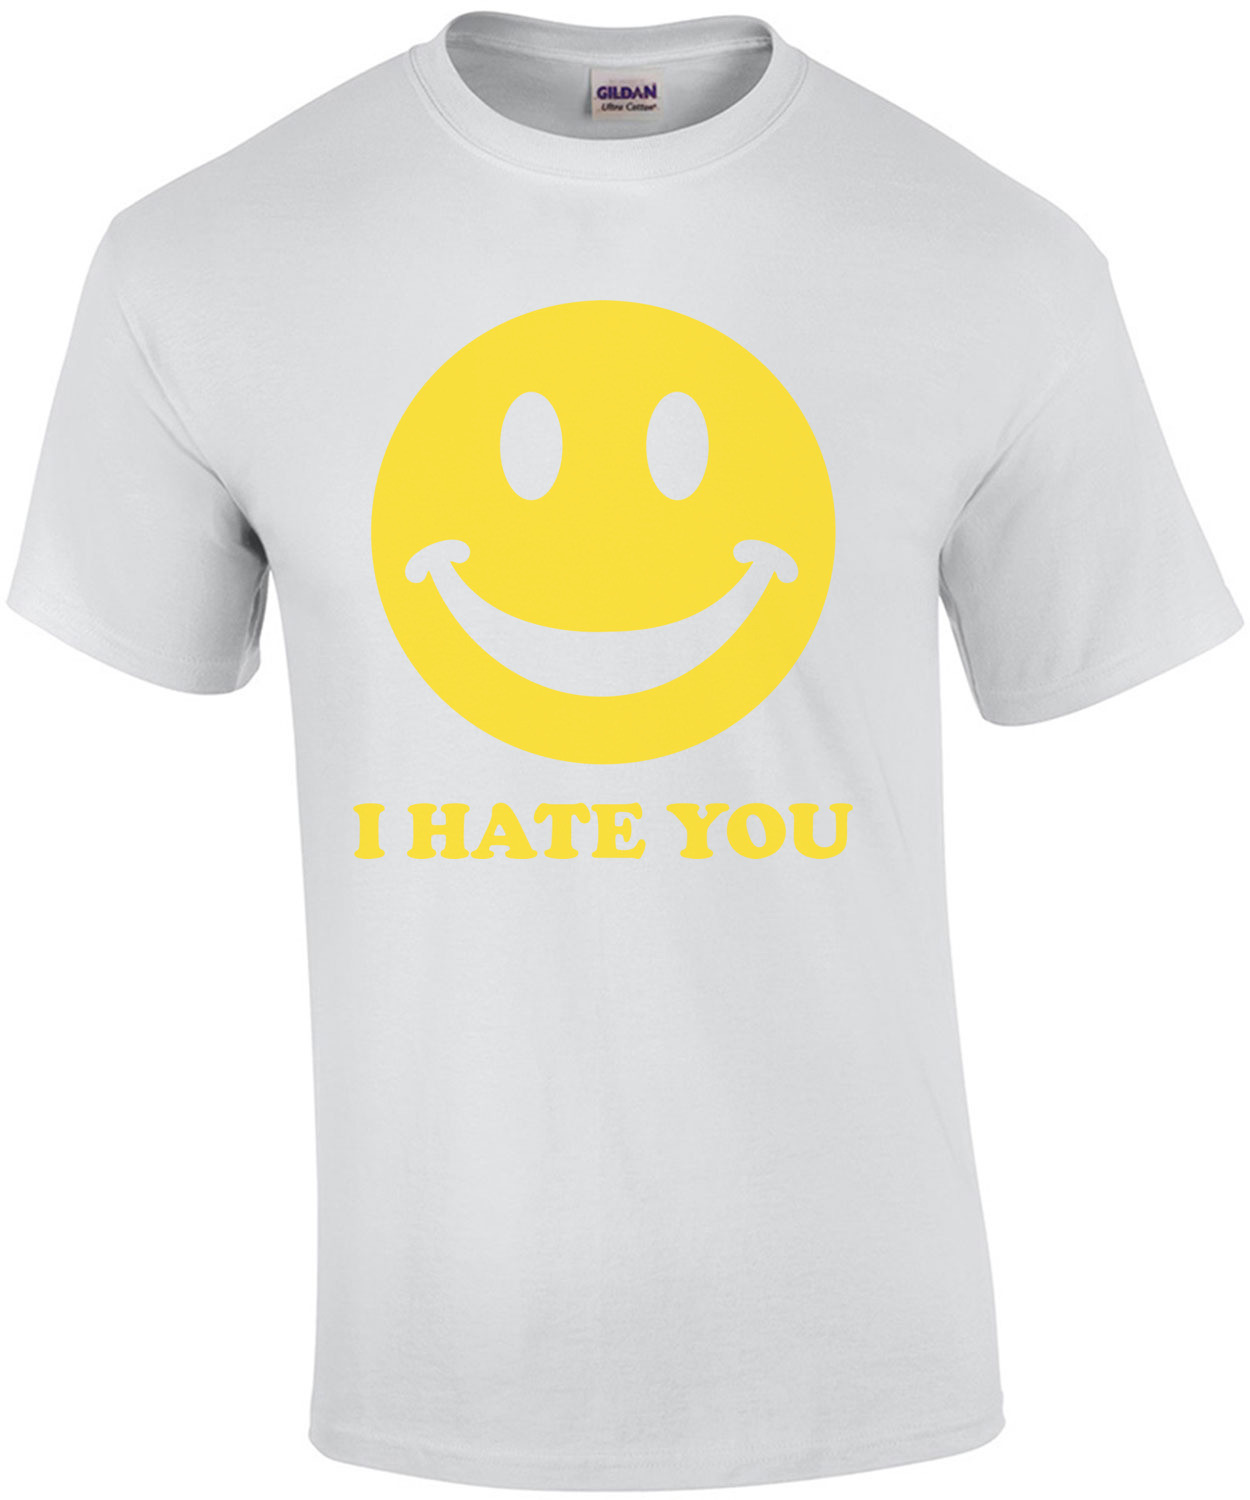 I Hate You Smiley Shirt